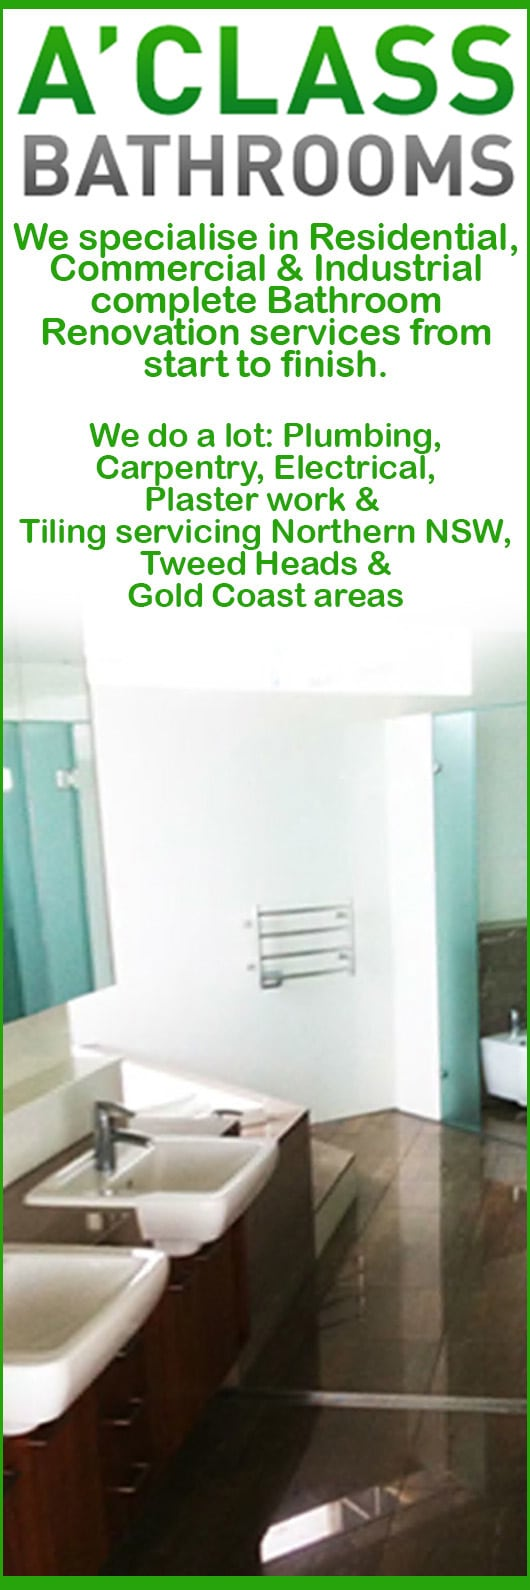 Bathroom Renovations Tweed Heads a'class bathrooms pty ltd - bathroom renovations & designs - tweed